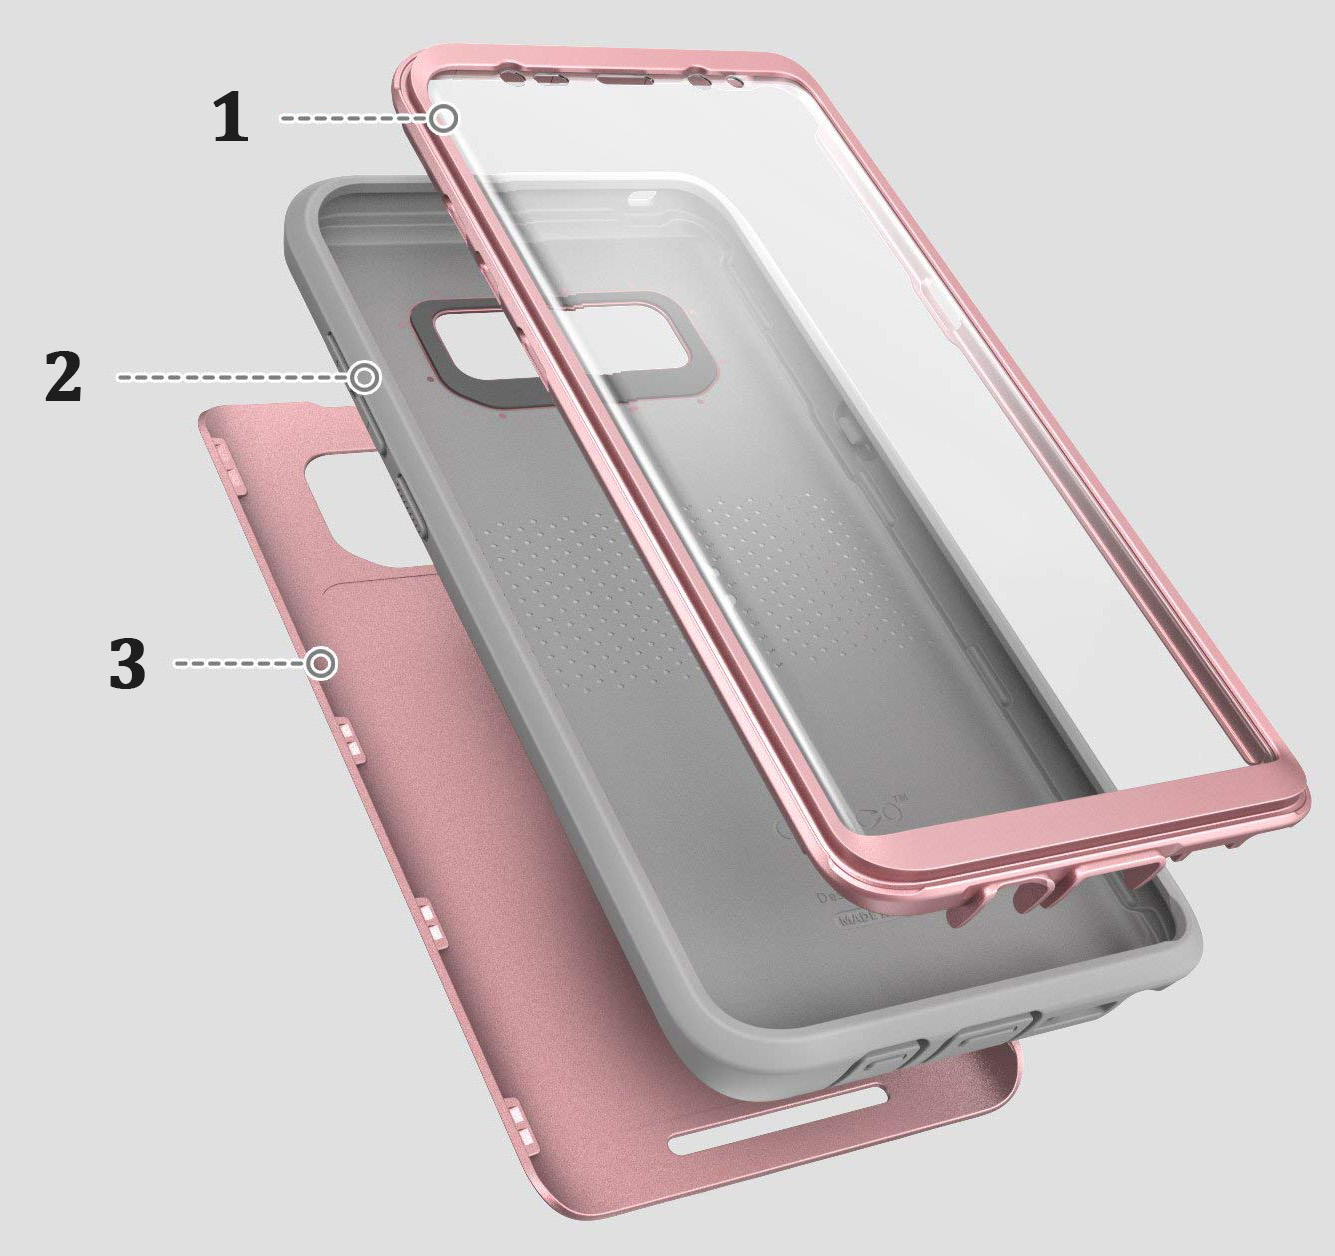 Etui pancerne Supcase Clayco Hera do Galaxy Note 8